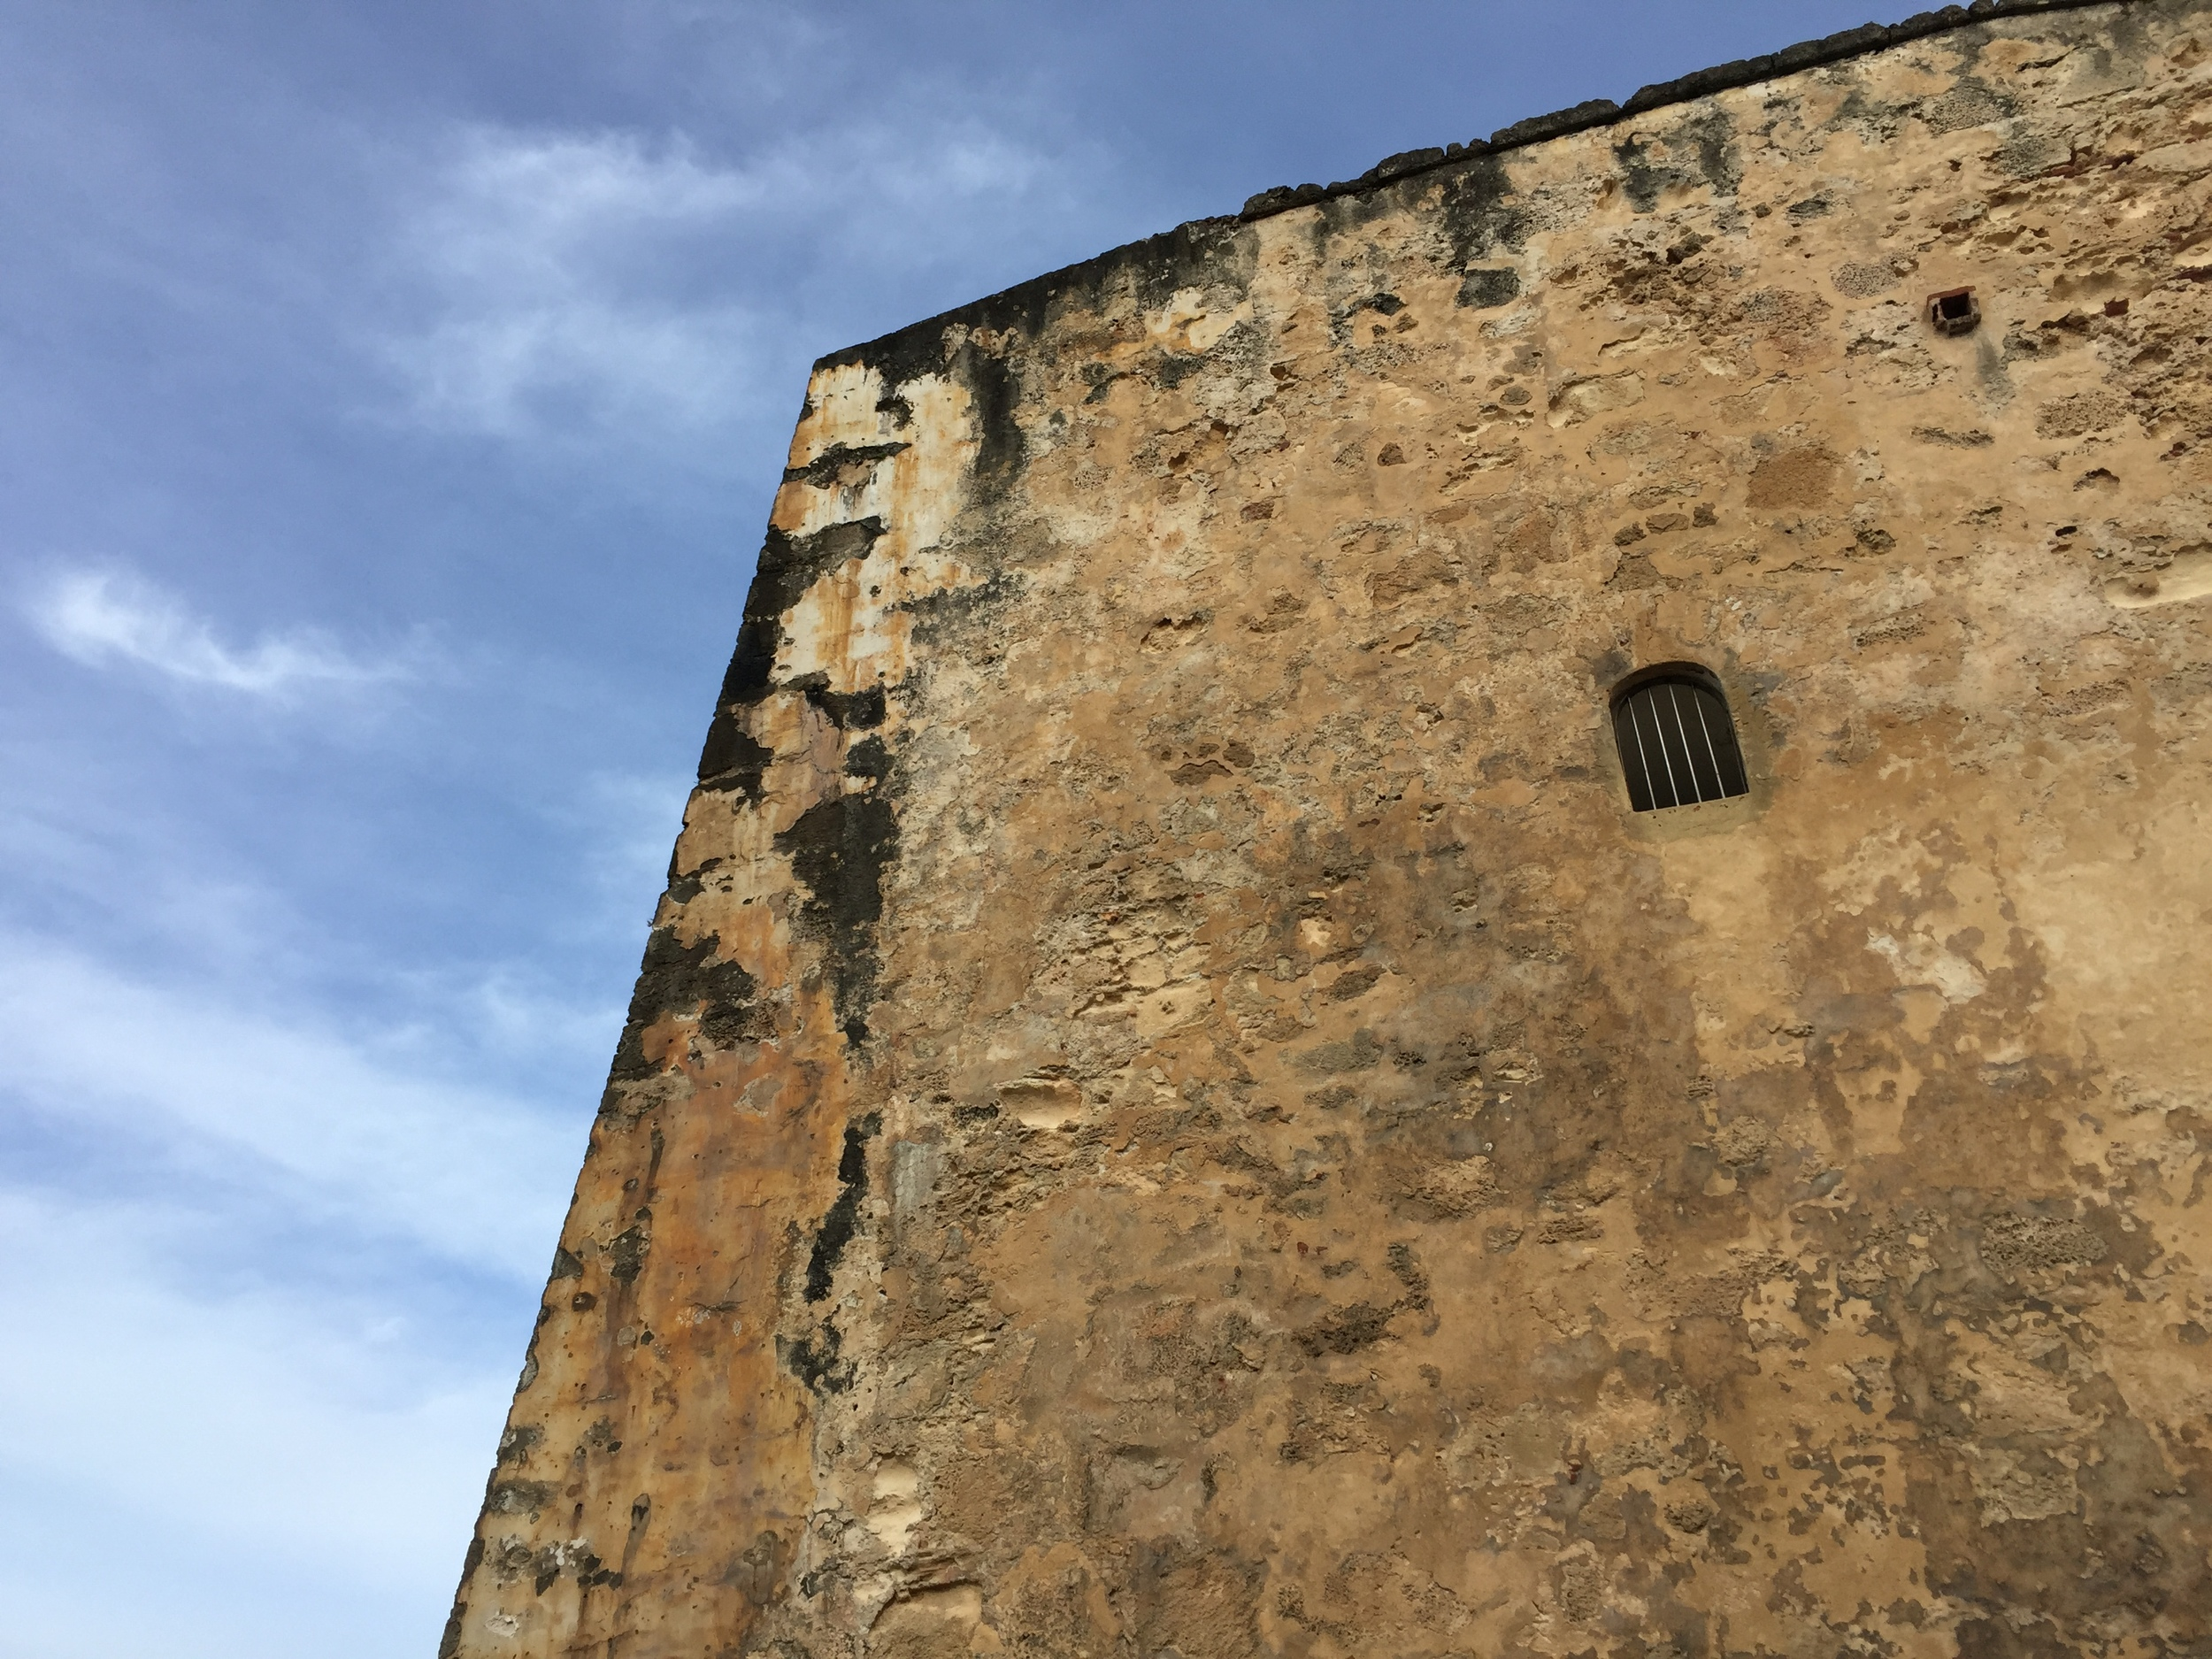 I left the client-site and saw a fort in Puerto Rico during the day time with people around. Safe or not safe? Pop quiz!